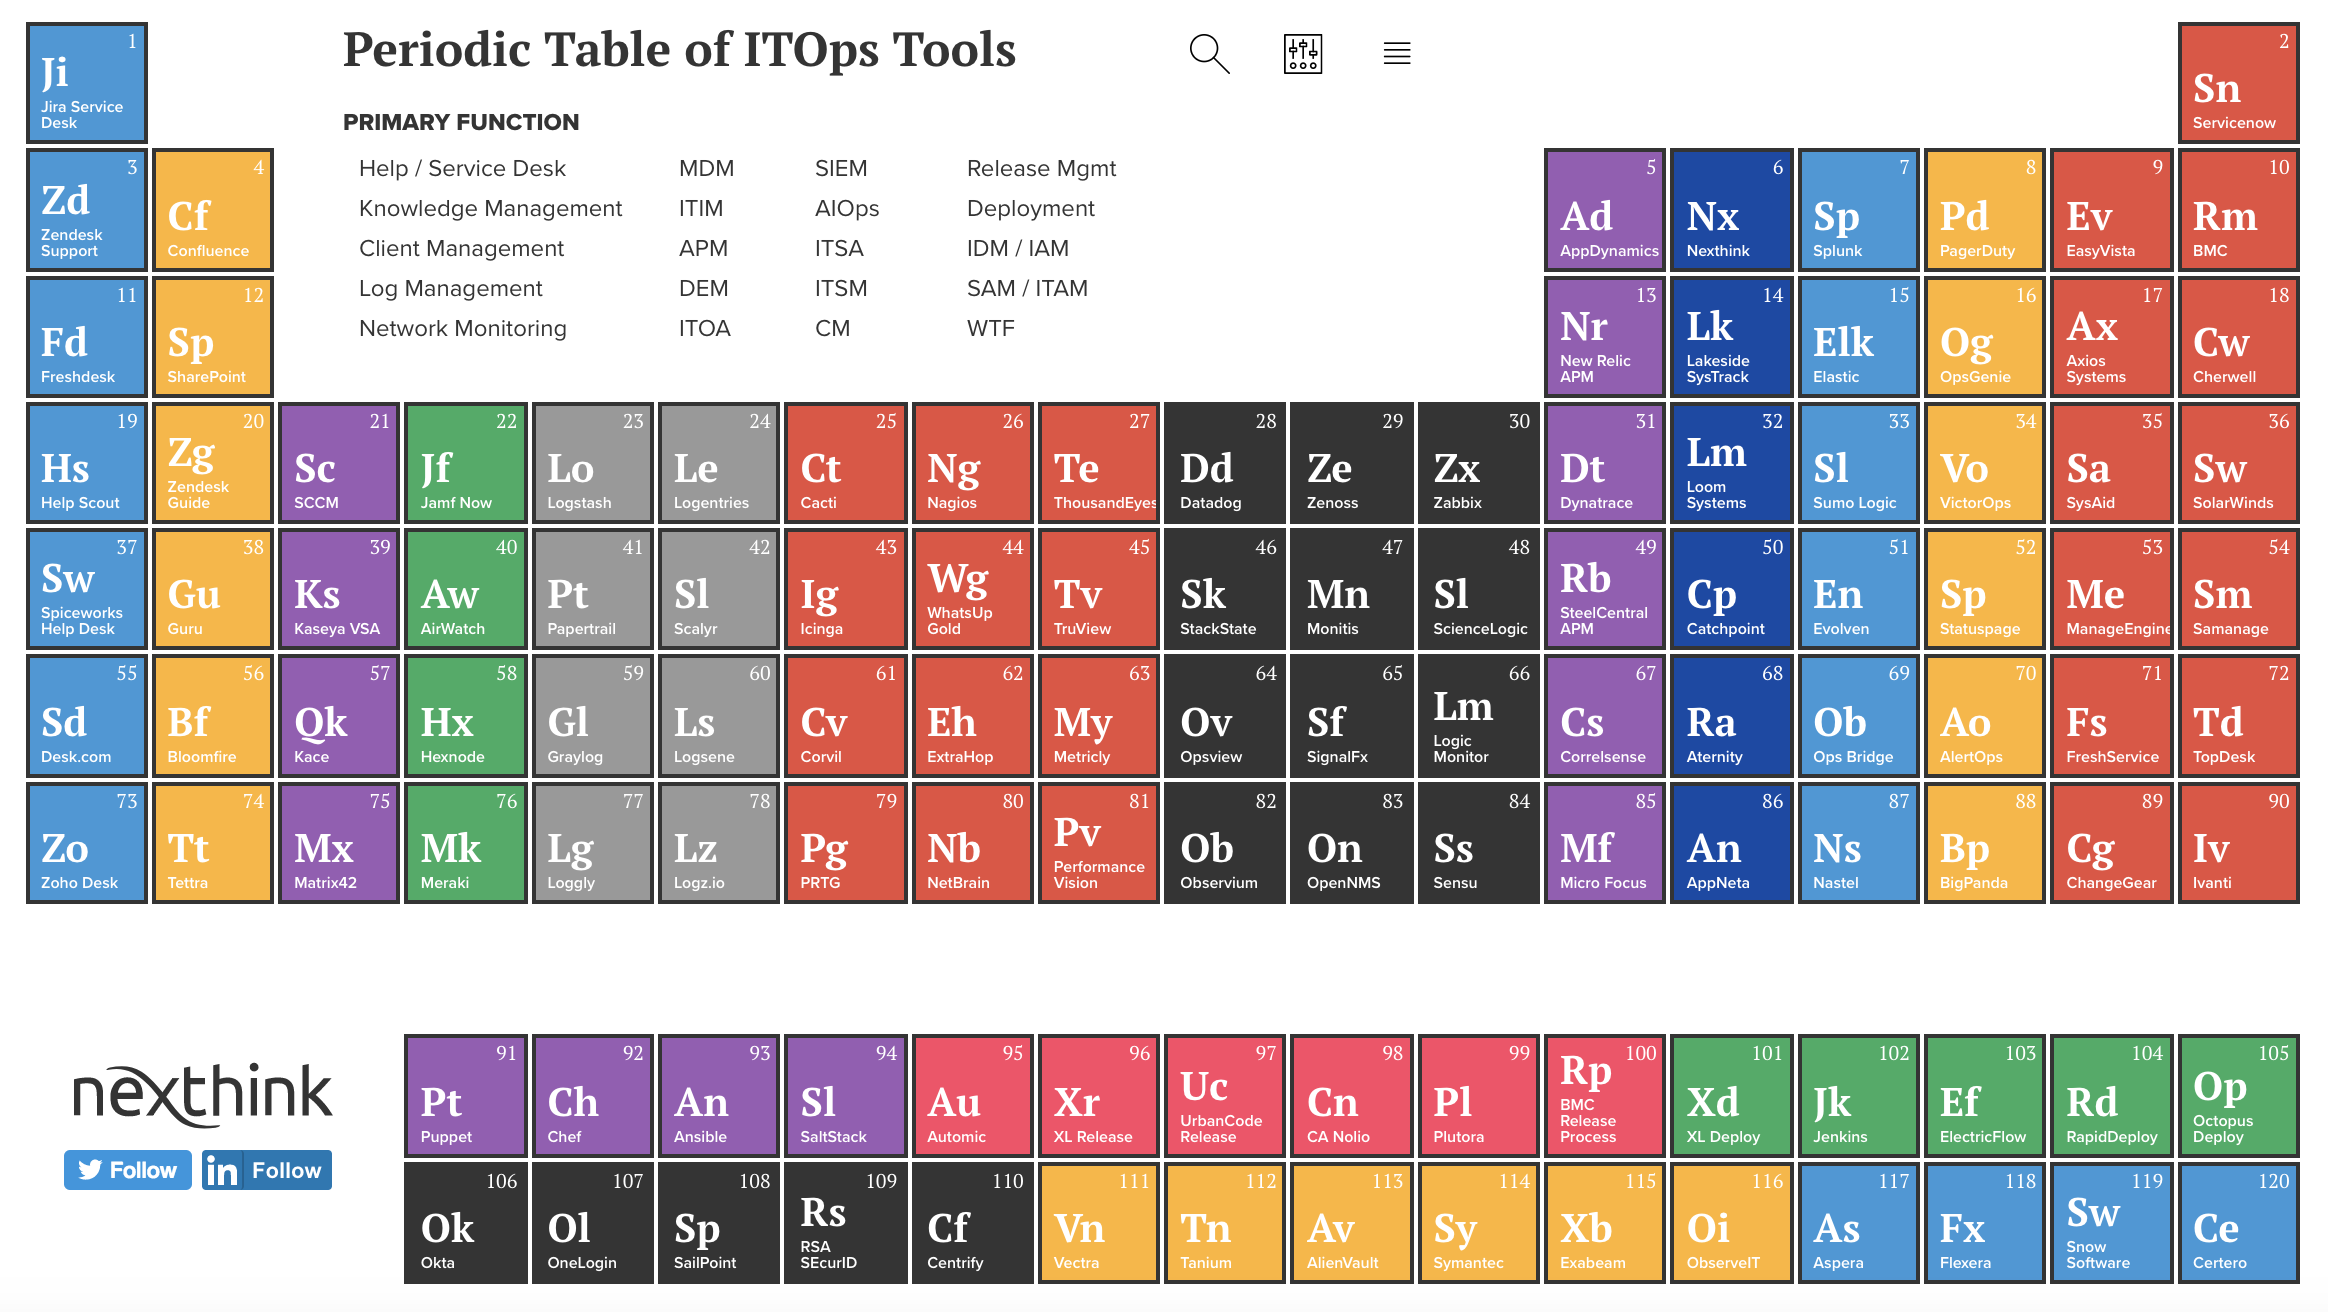 Nexthink | Periodic Table of IT Ops Tools